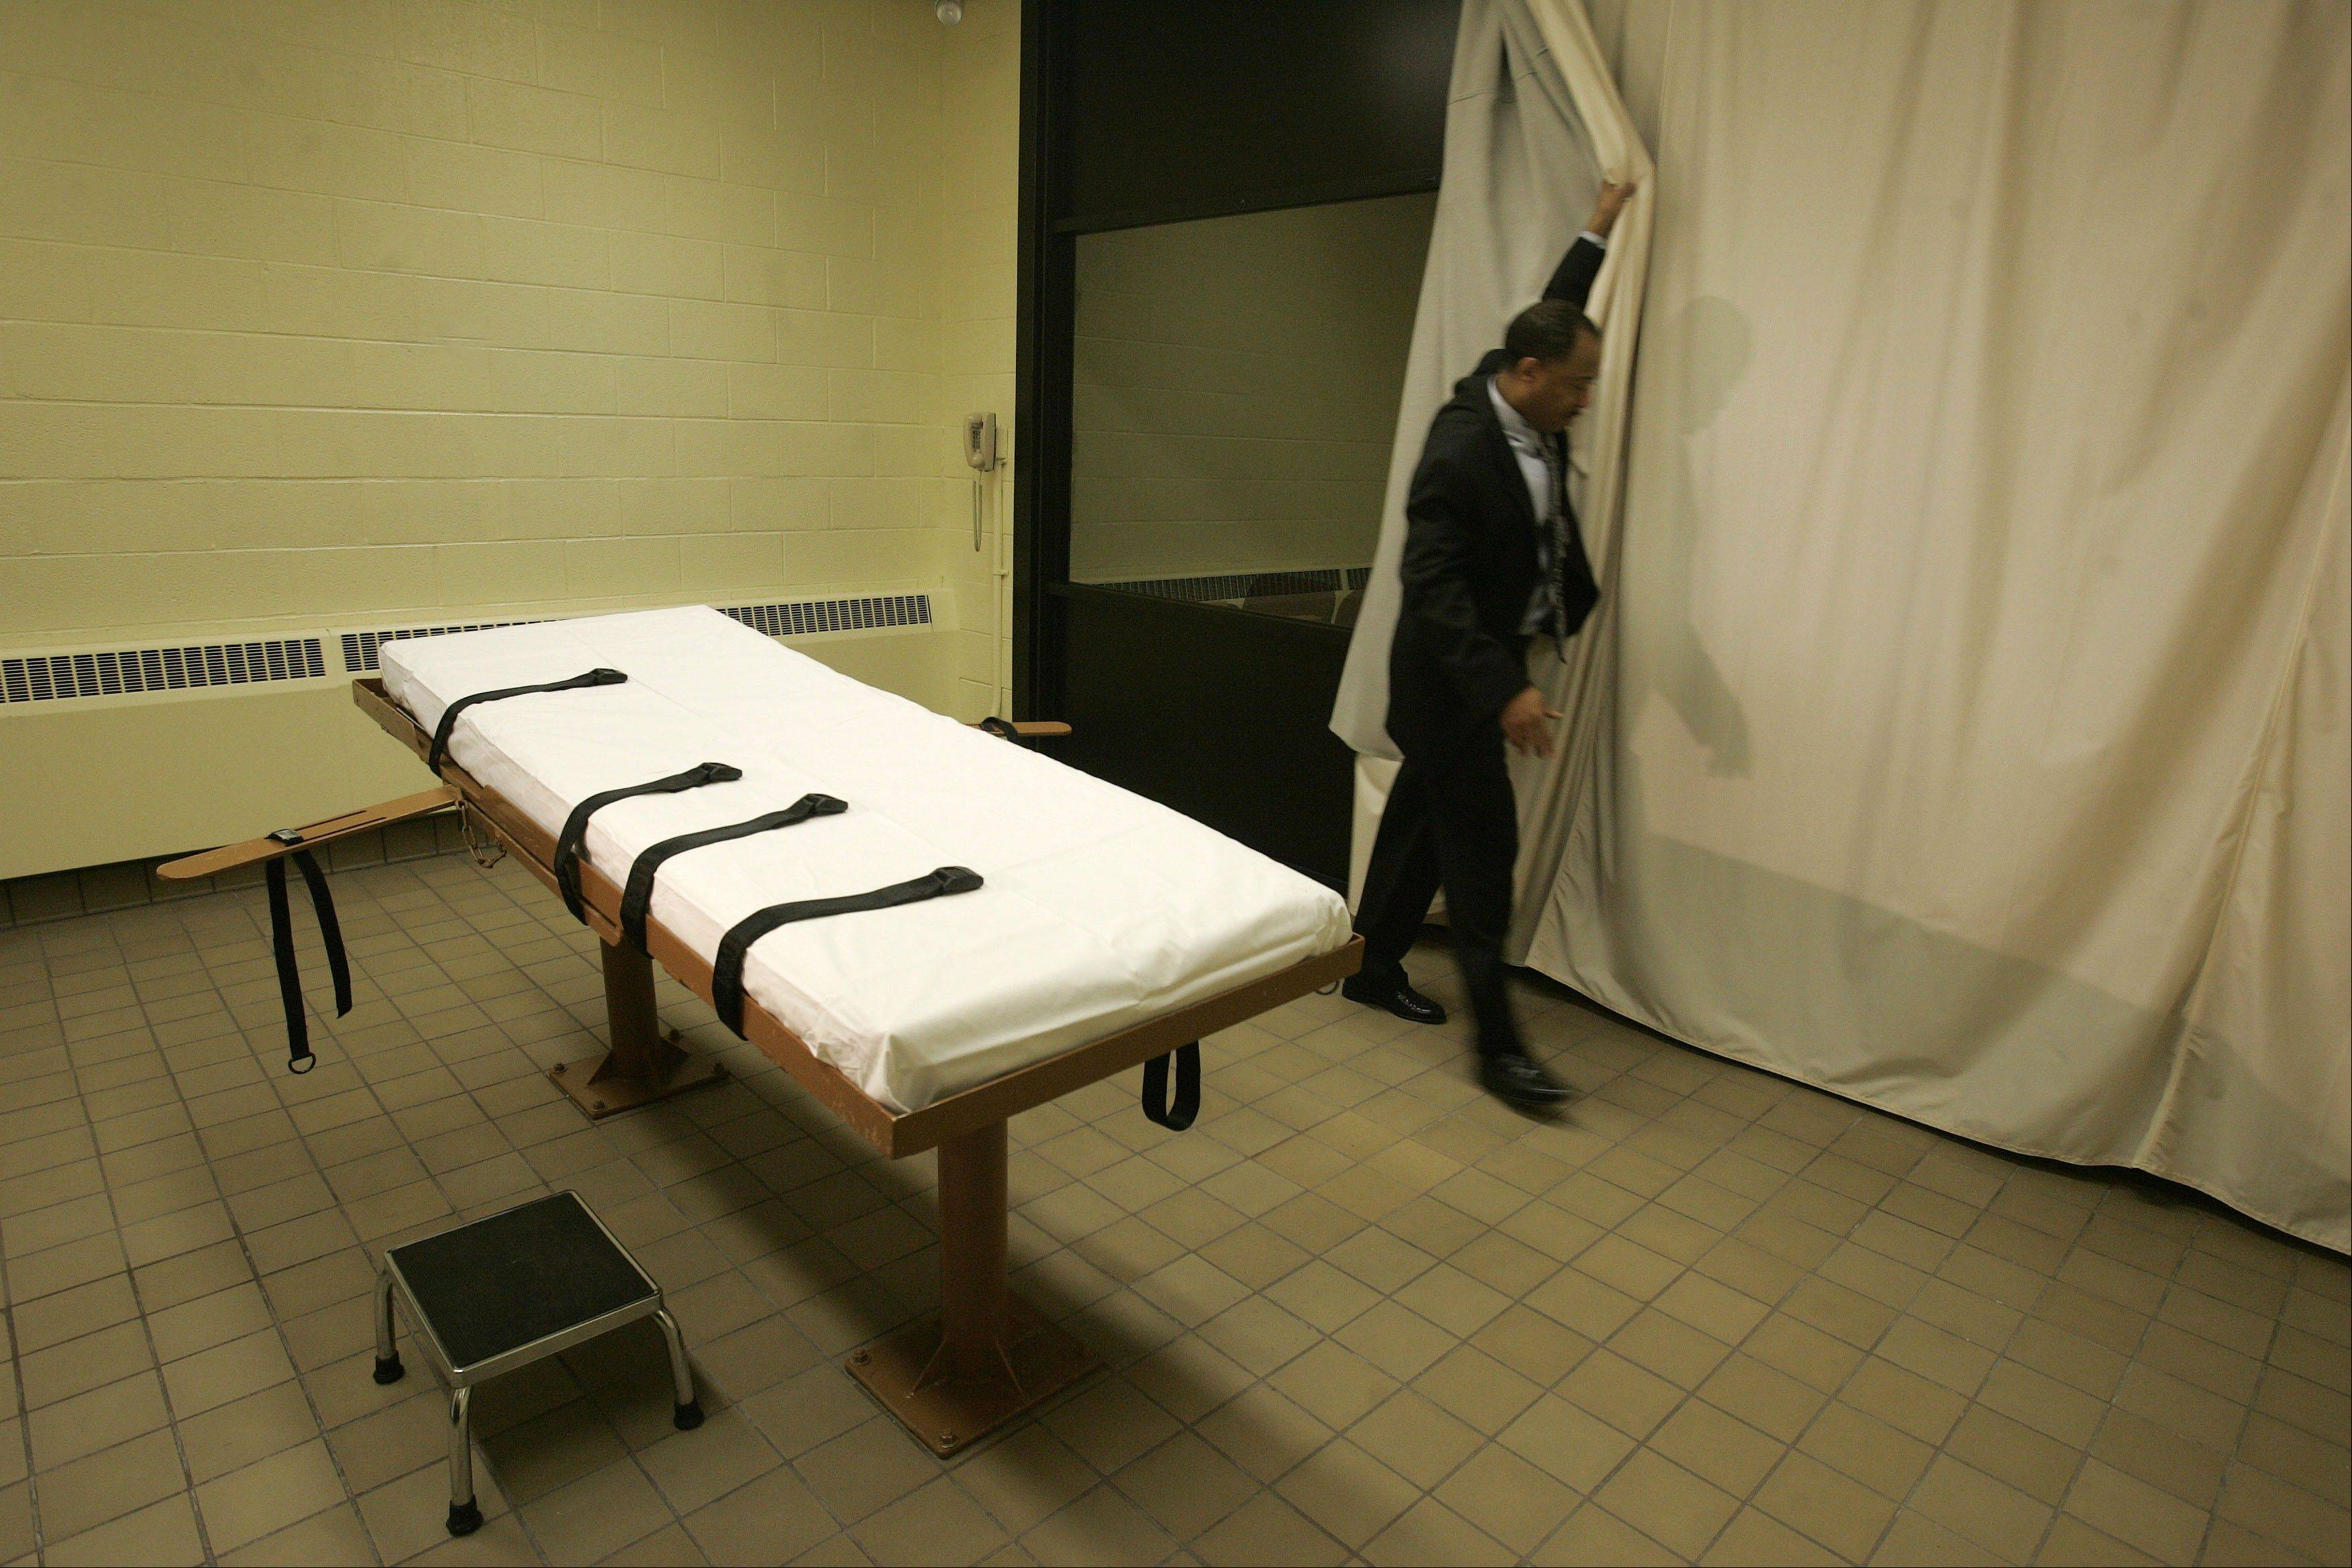 Ohio prison officials said Friday, Oct. 4, 2013, they are keeping their primary lethal injection drug in place despite the state's supply expiring, but they've added a second drug option for executioners to address the shortage.